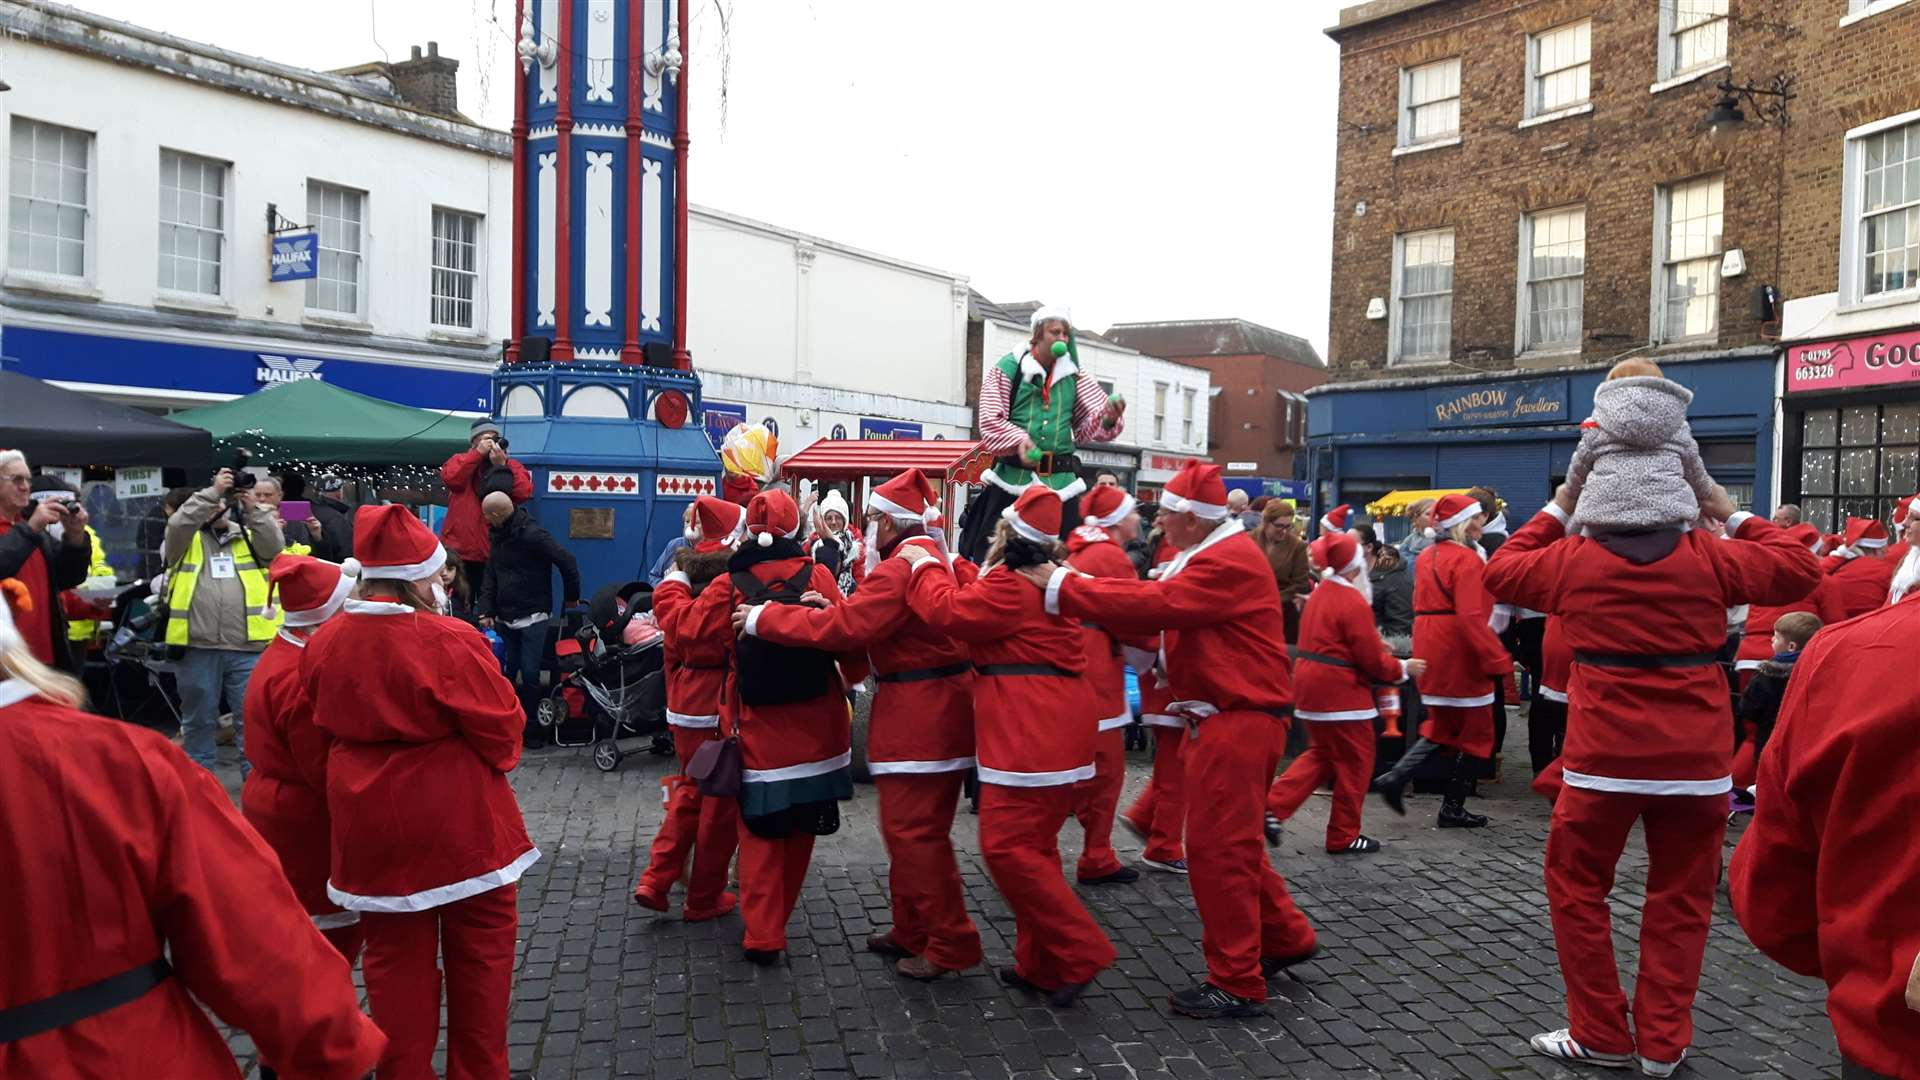 Rotary Club Santas will be holding a Christmas Conga around the clock tower at the Sheerness lights switch-on at 3pm this Saturday (22863682)